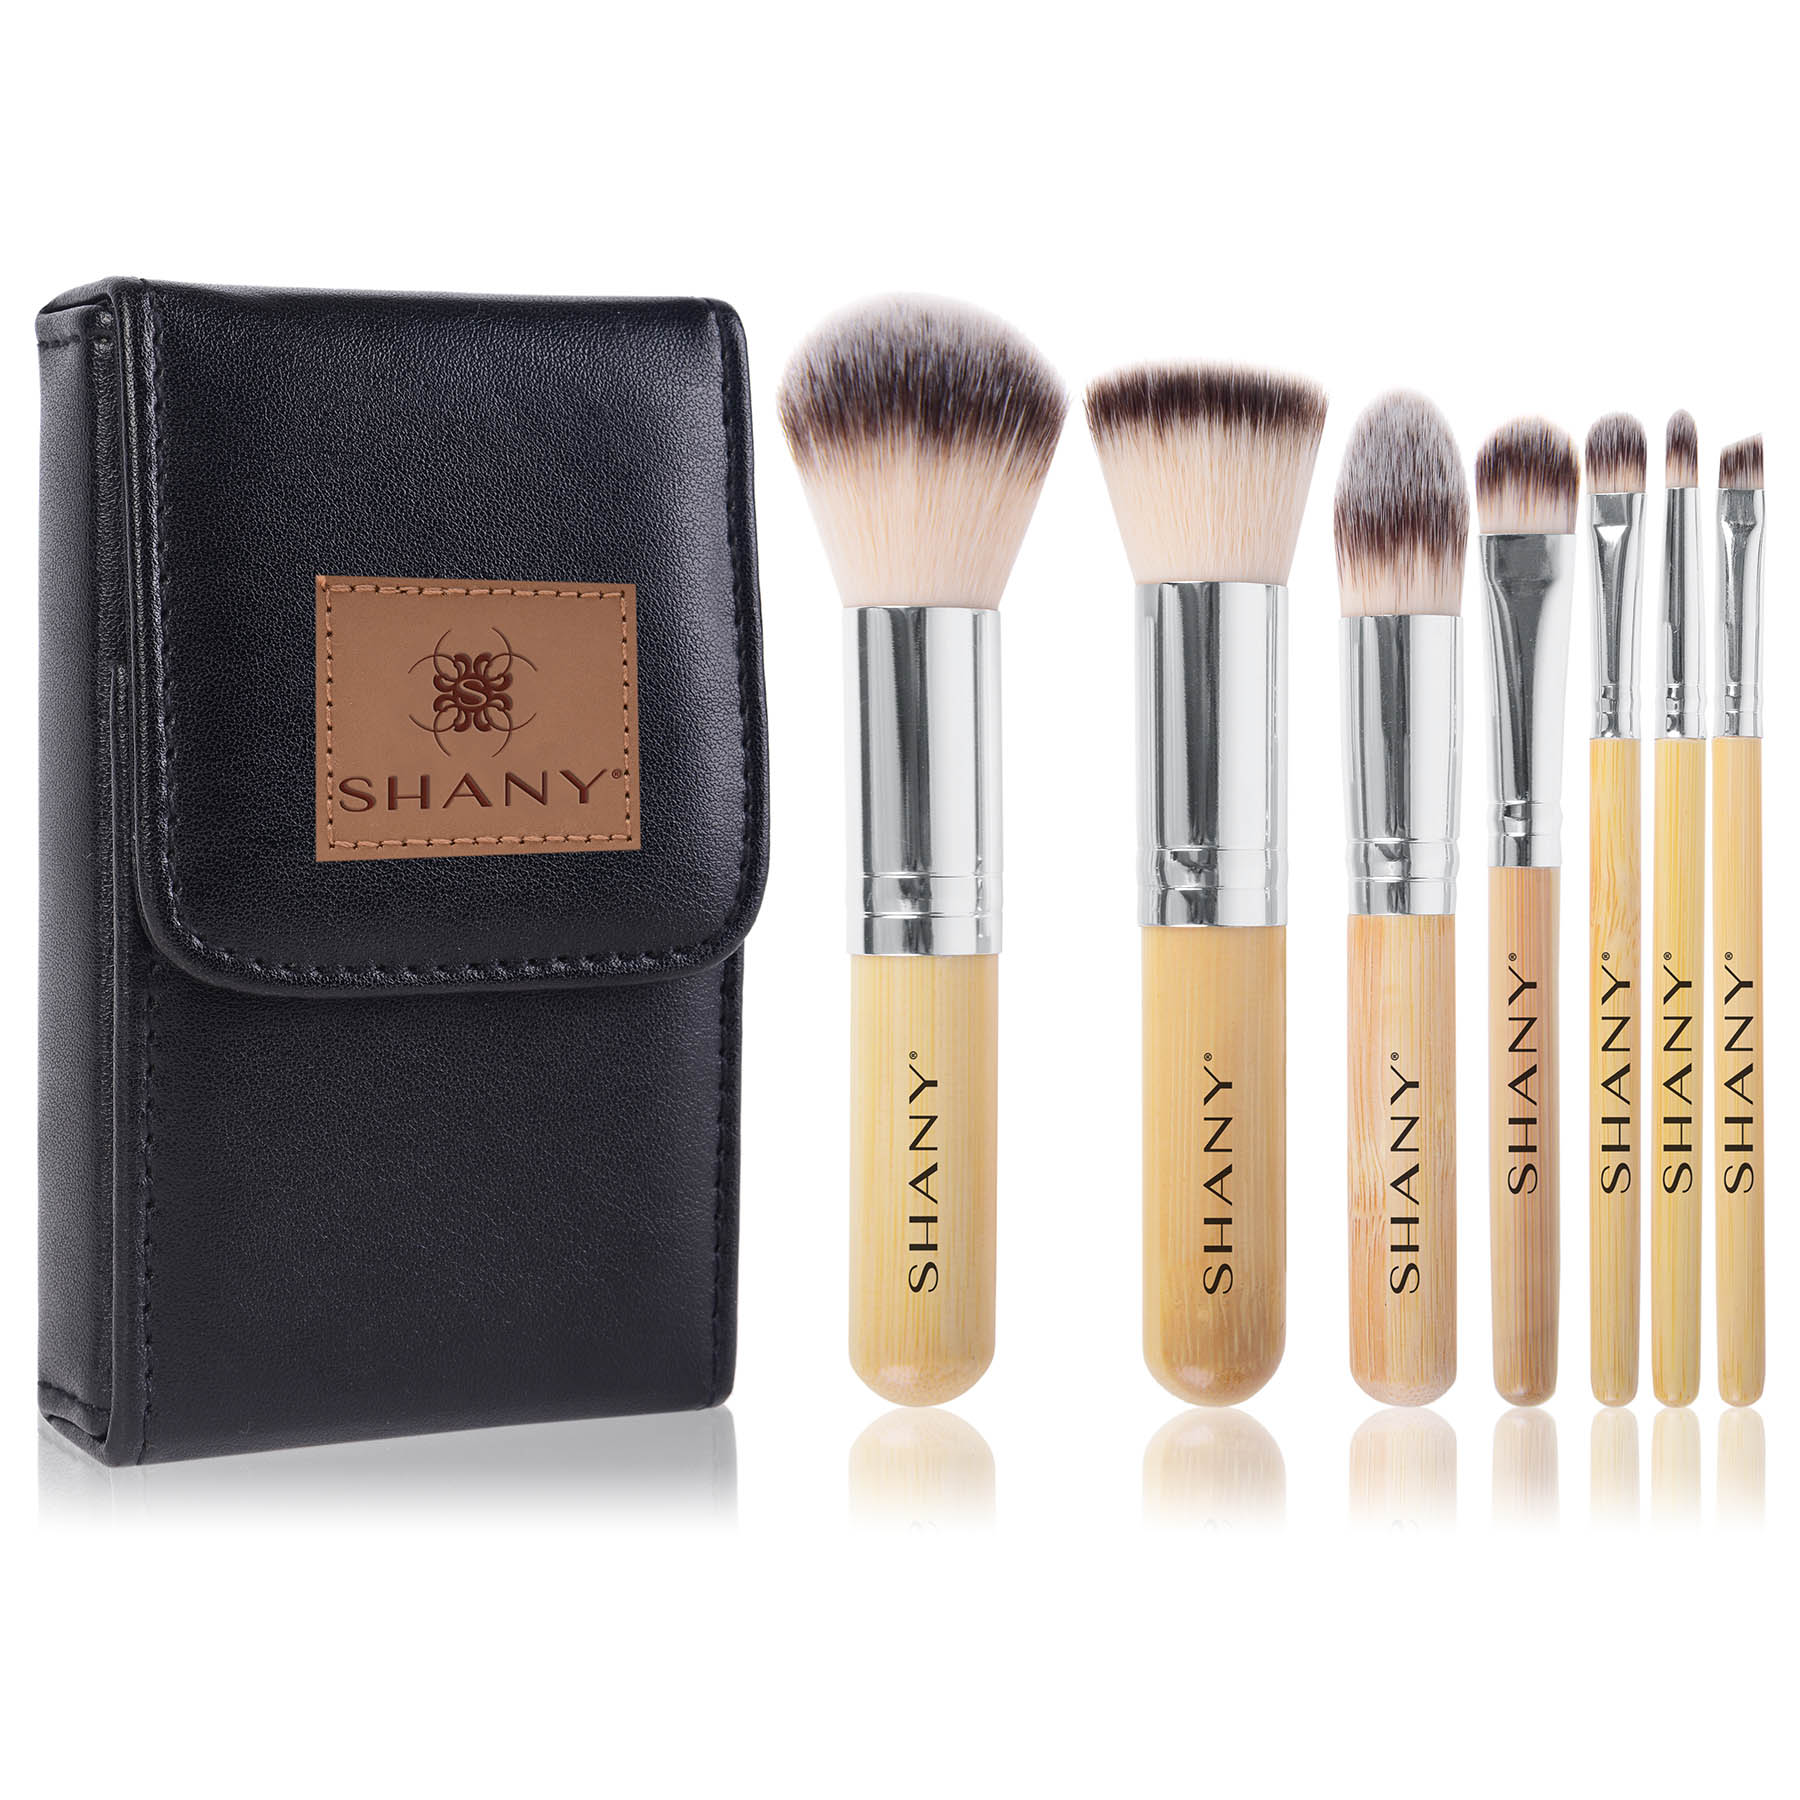 SHANY I love Bamboo - 7pc Petite Pro Bamboo brush set with Carrying Case